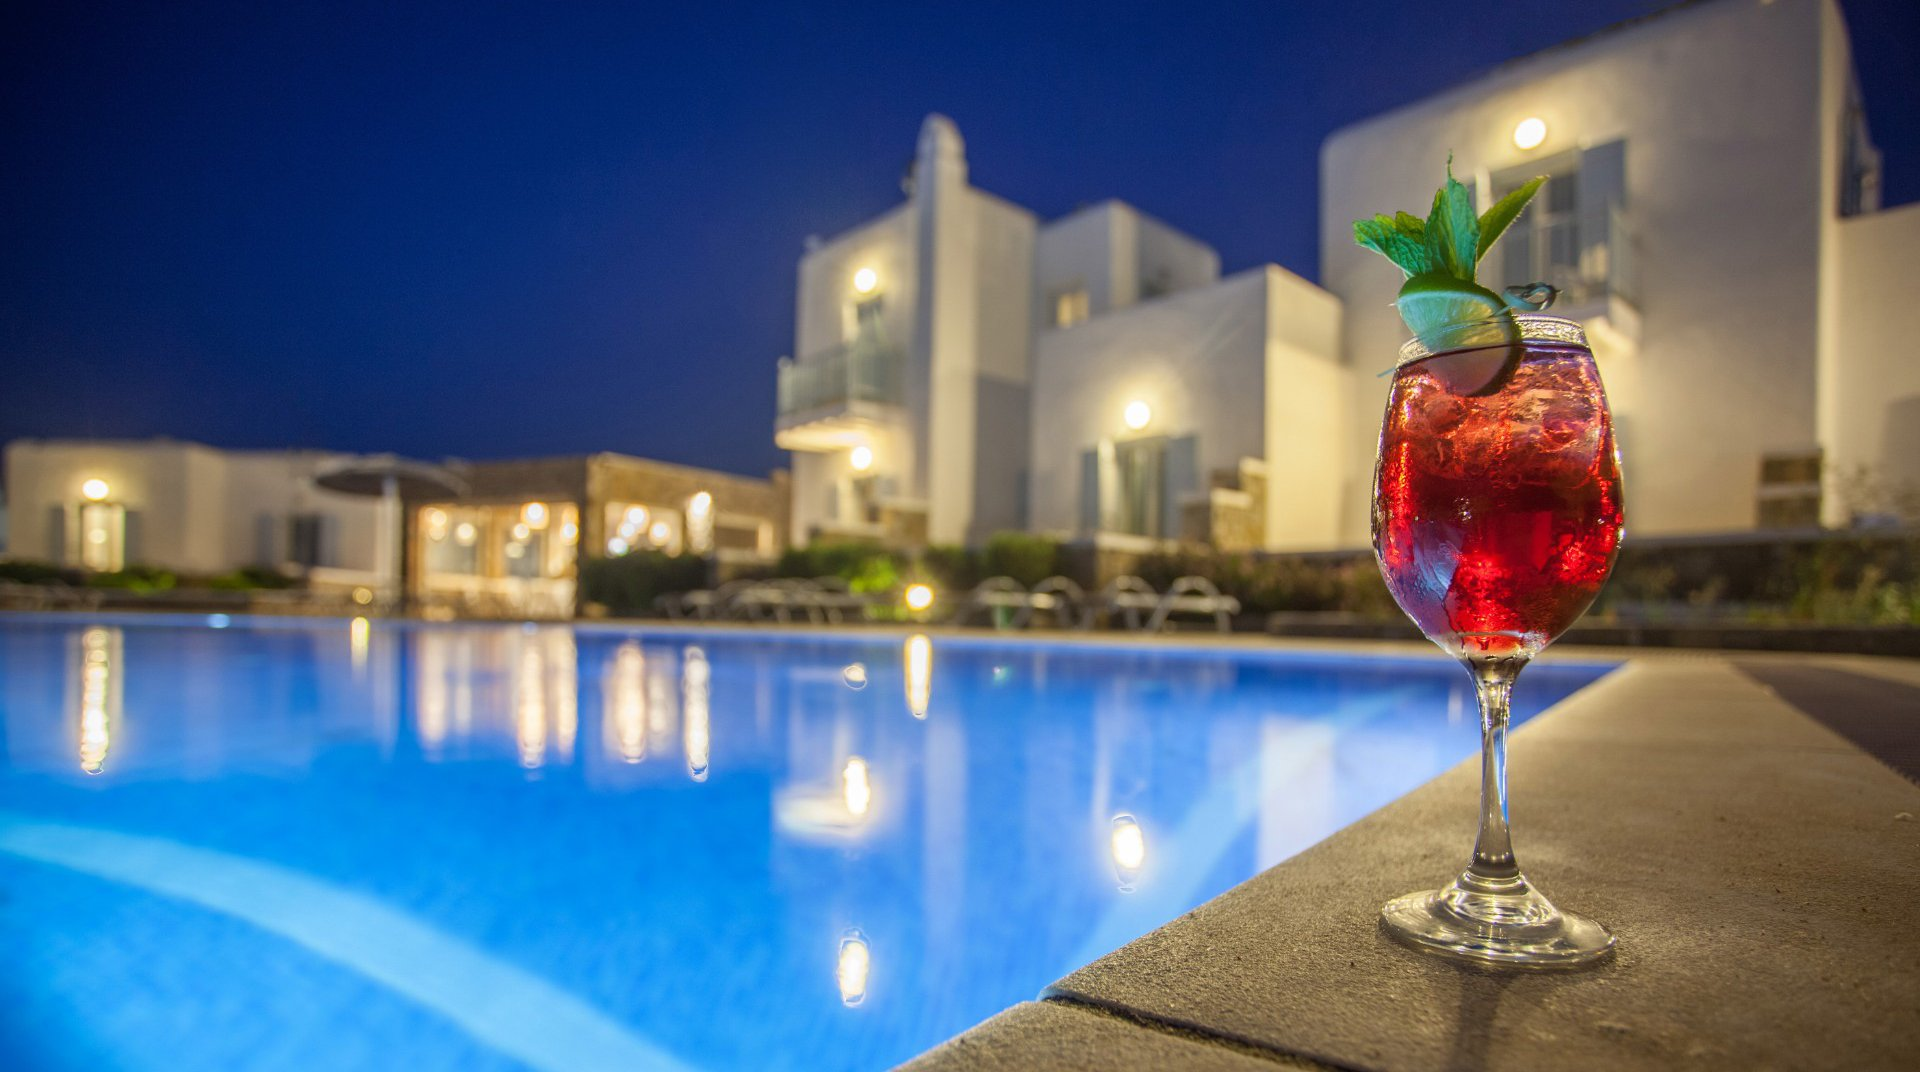 The pool of the Sunset Wing during night time with a cocktail and the restaurant in the background